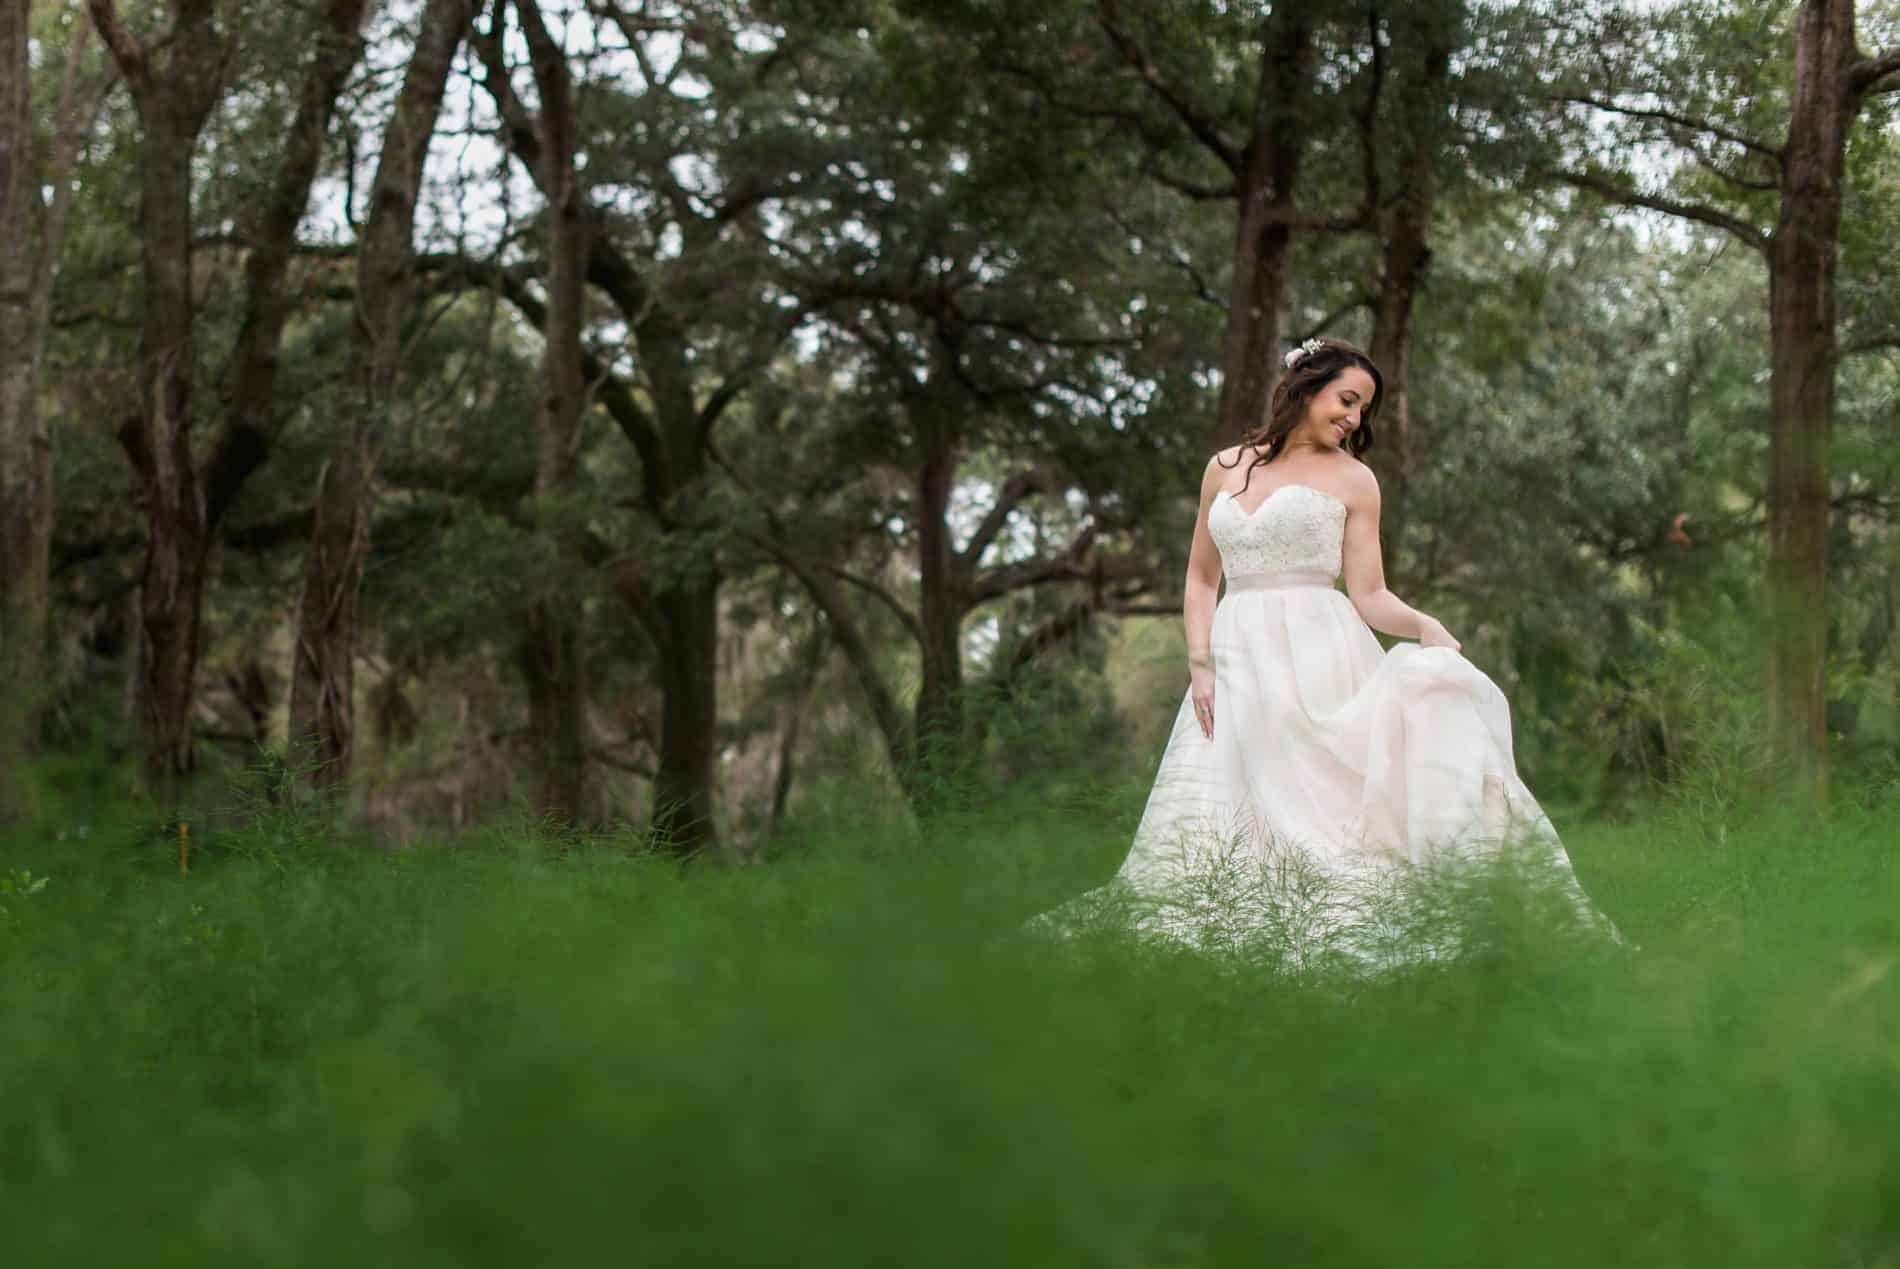 Photos of a Bride and Groom at Harmony Gardens